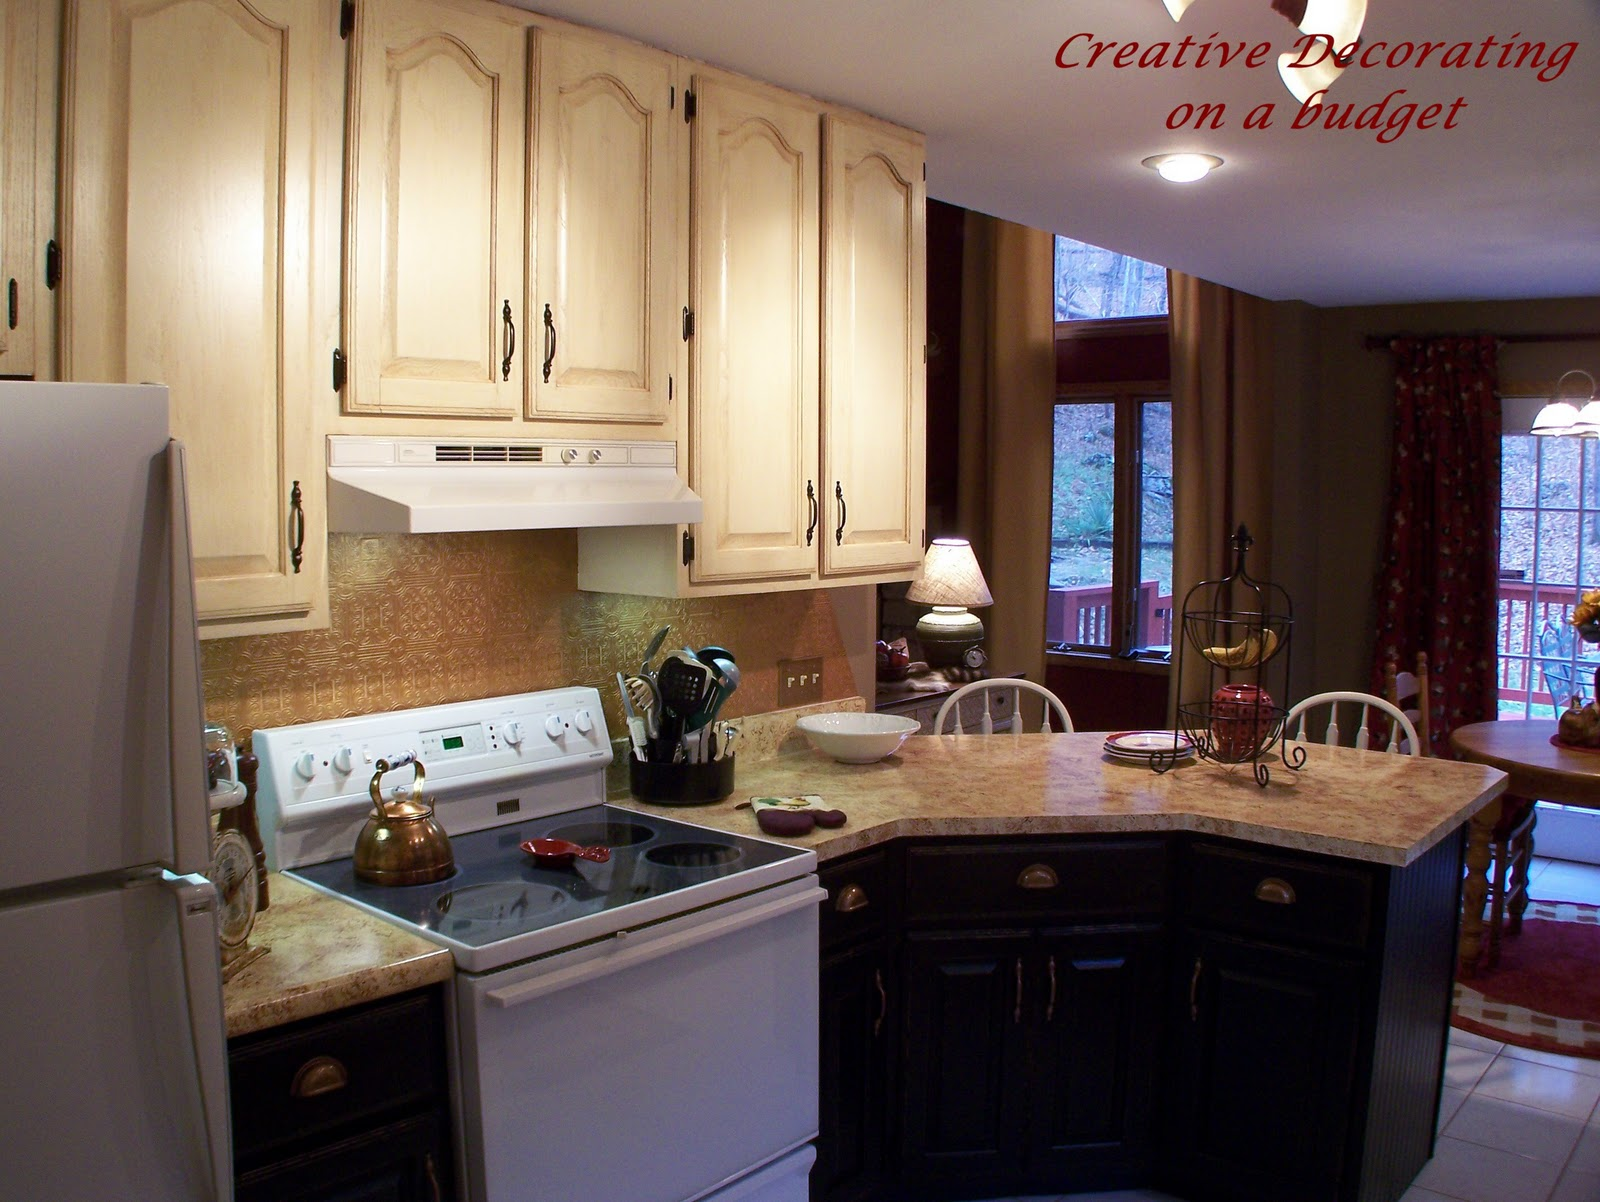 inexpensive countertops for kitchens kitchen double doors creative decorating on a budget - diy show off ...